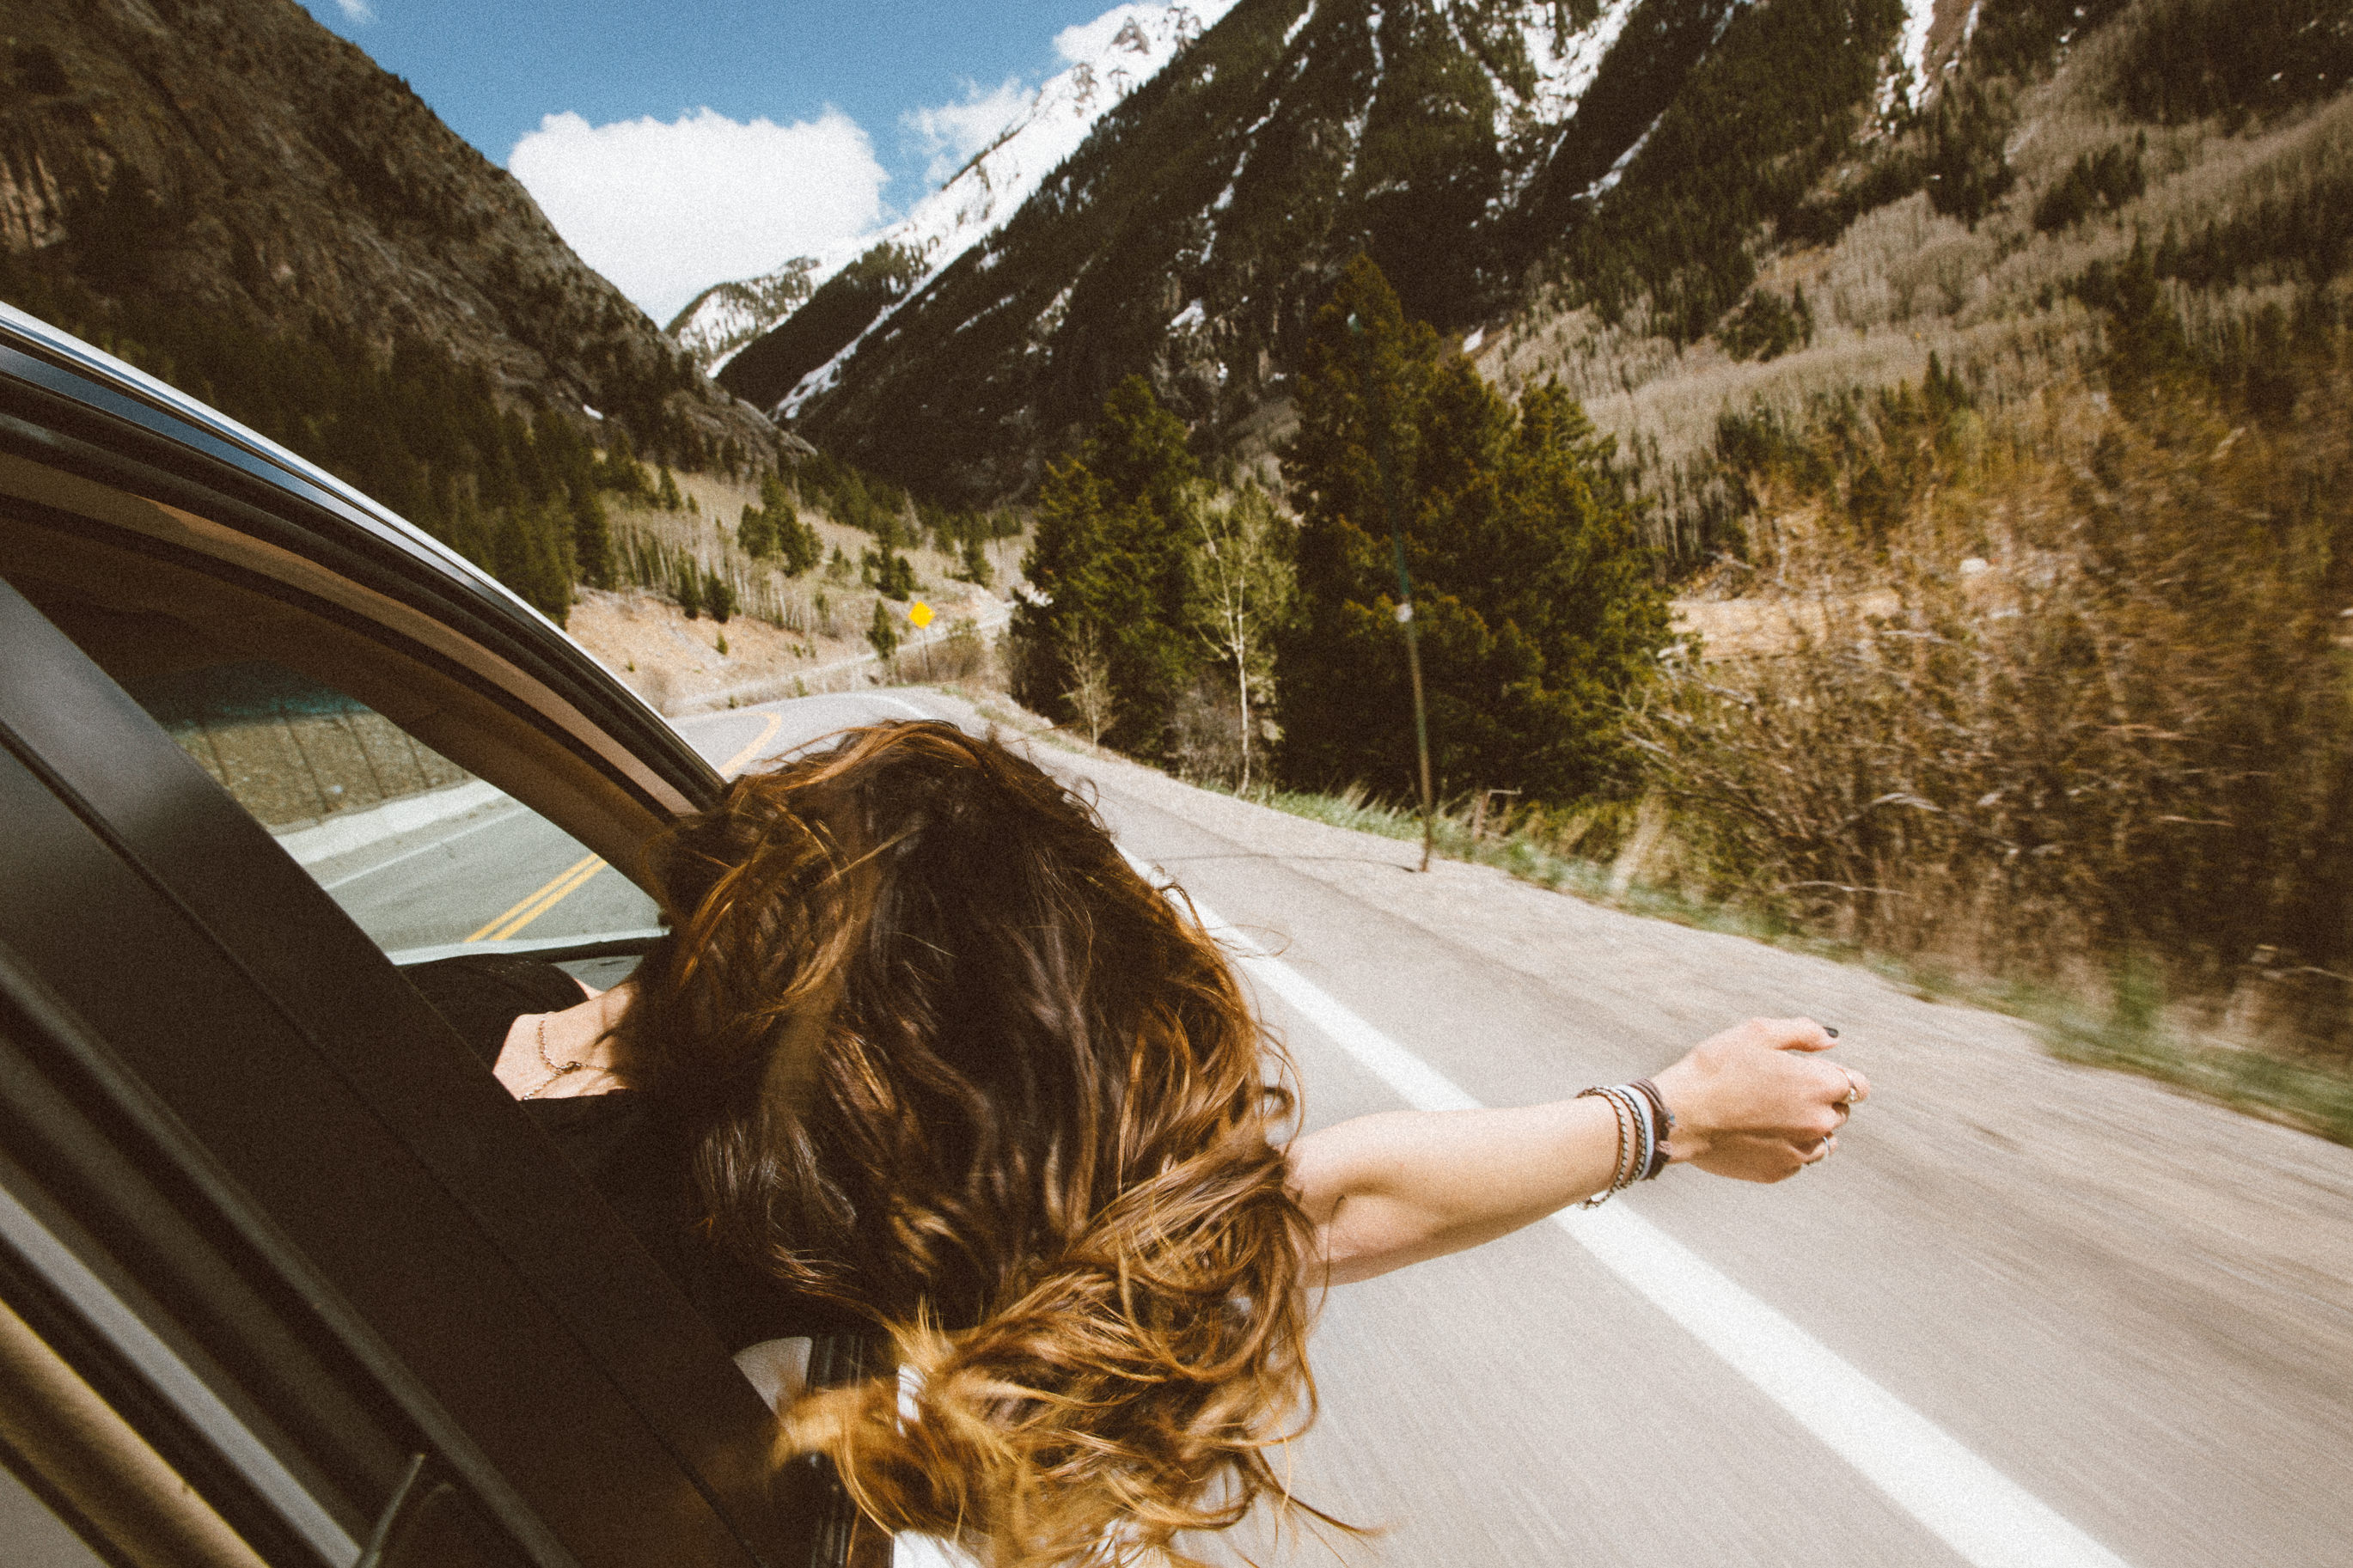 boss-fight-free-high-quality-stock-images-photos-photography-woman-arm-road-highway-mountain